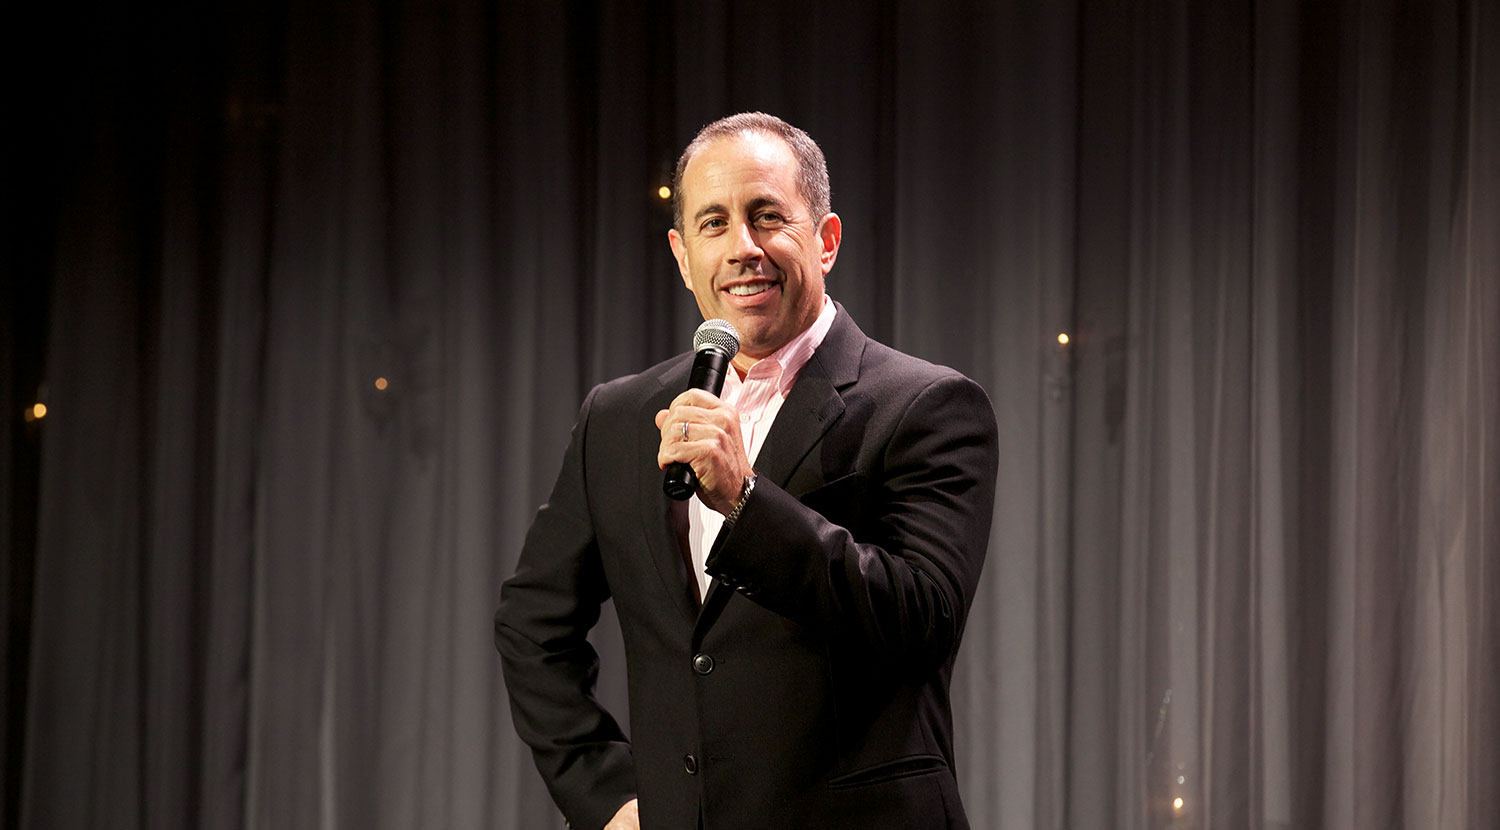 Jerry Seinfeld shares his experience with the TM technique at the Gala